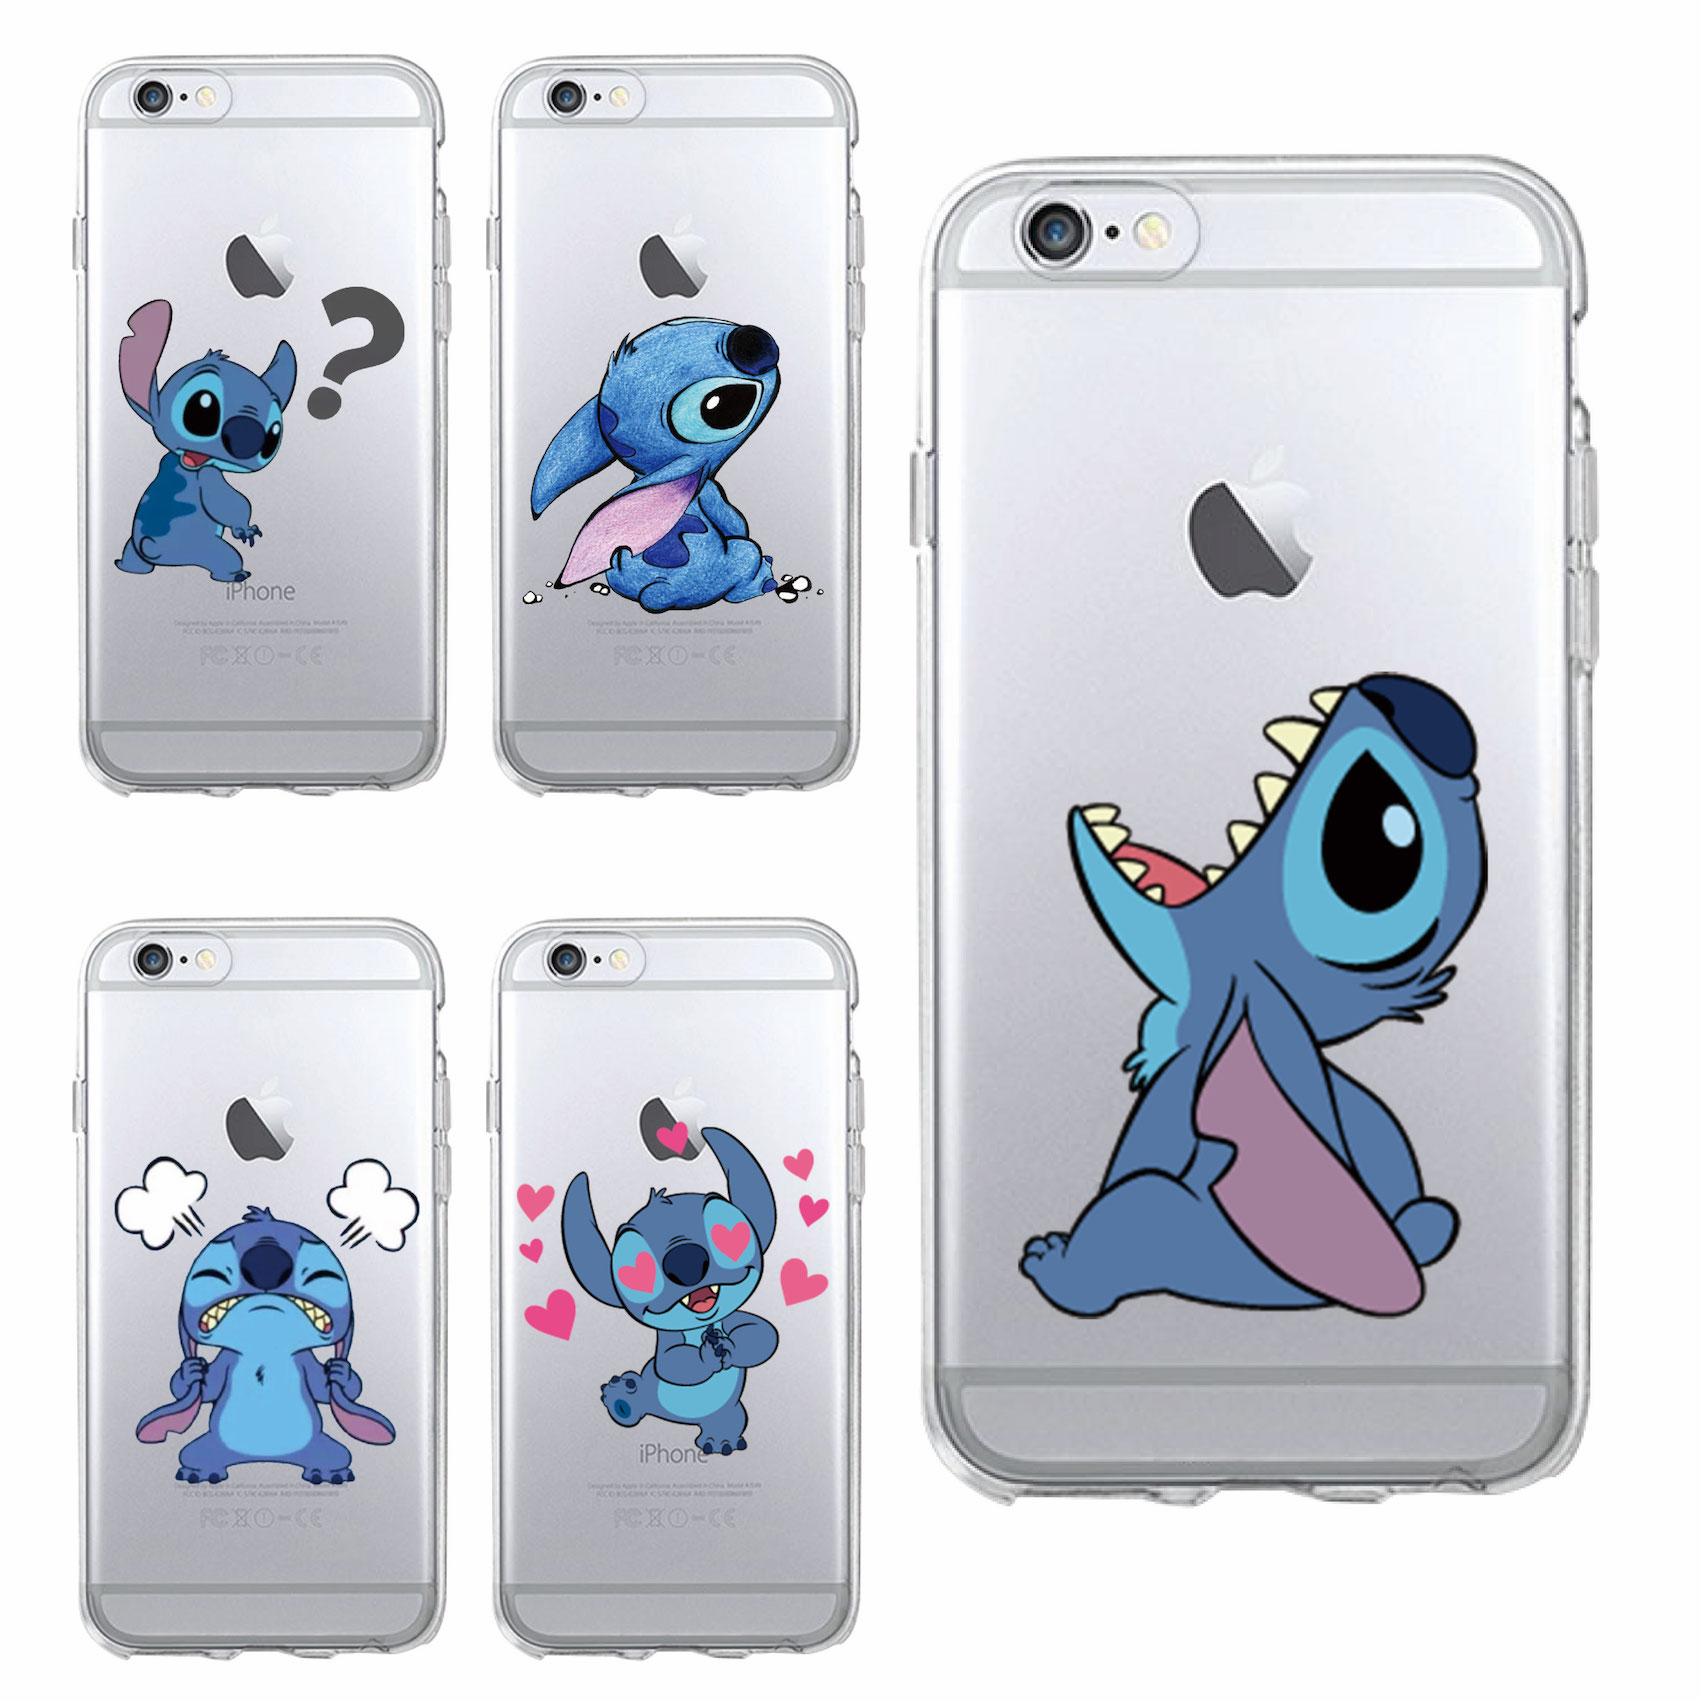 stitch phone case iphone 5s stitch emoji soft tpu clear phone 7987